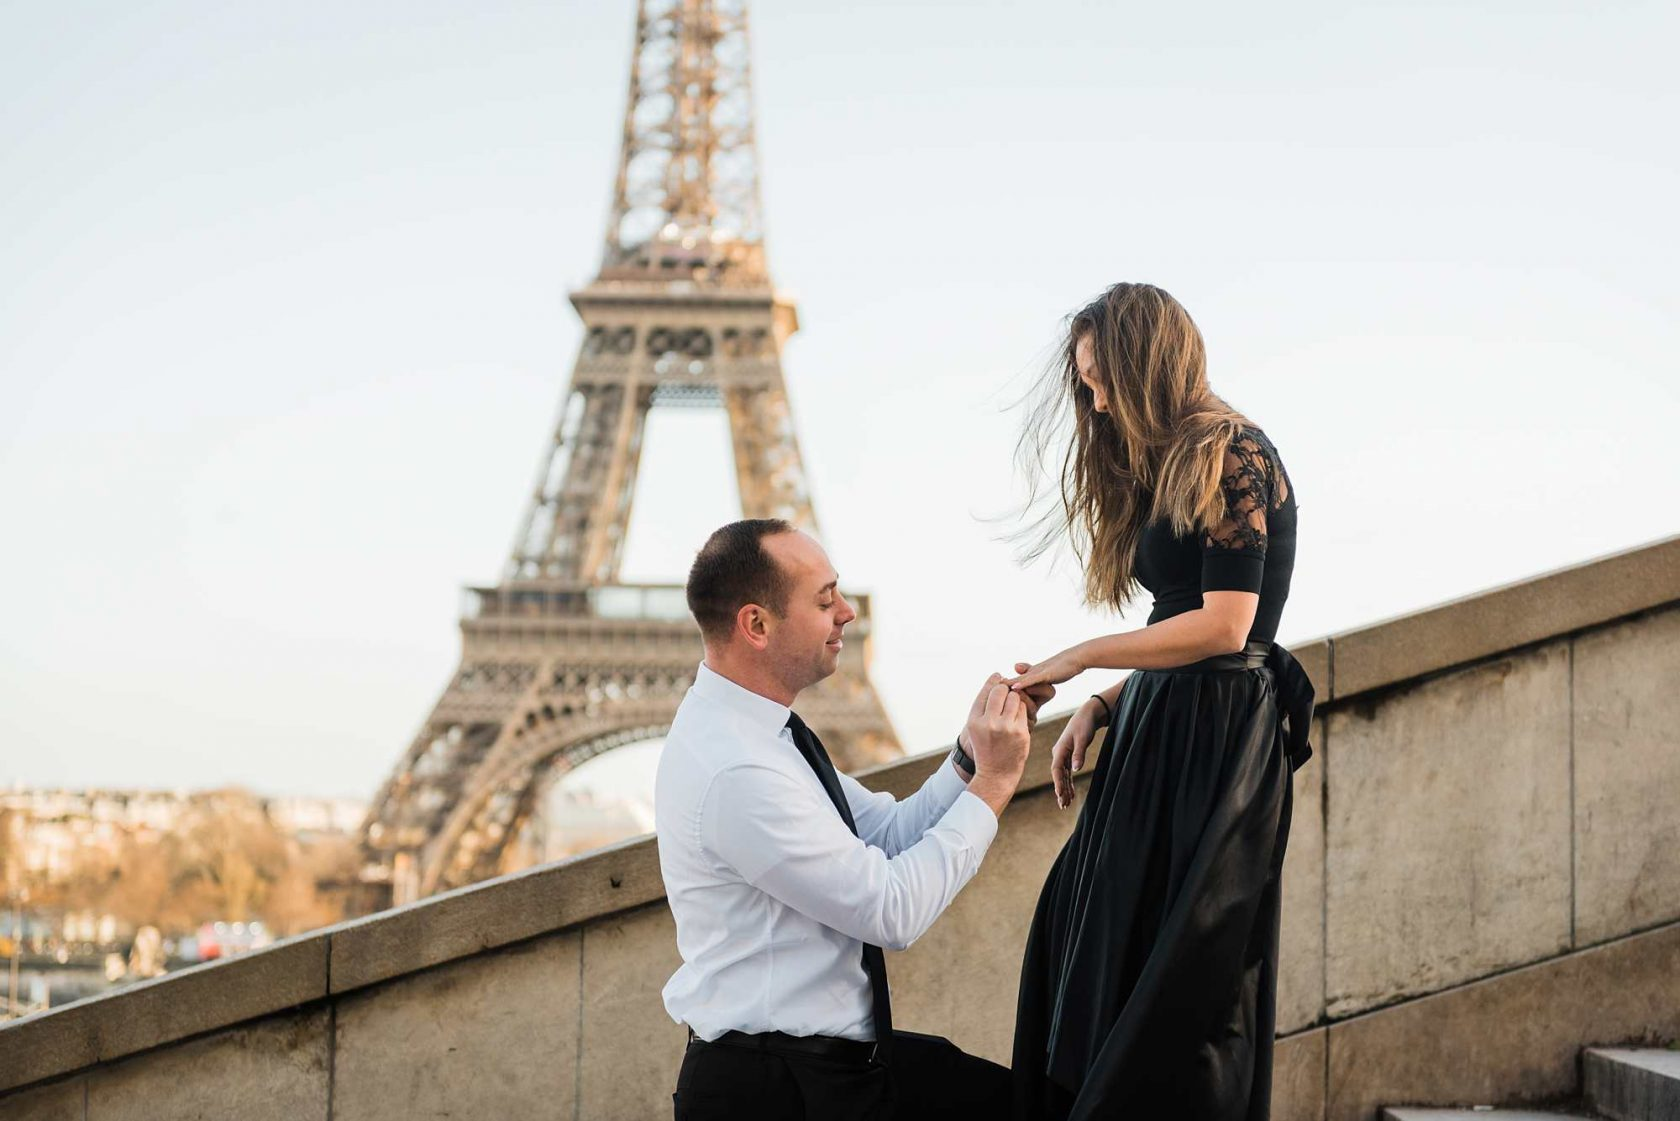 jennifer and yannick surprise proposal photo shoot in paris friday 13th